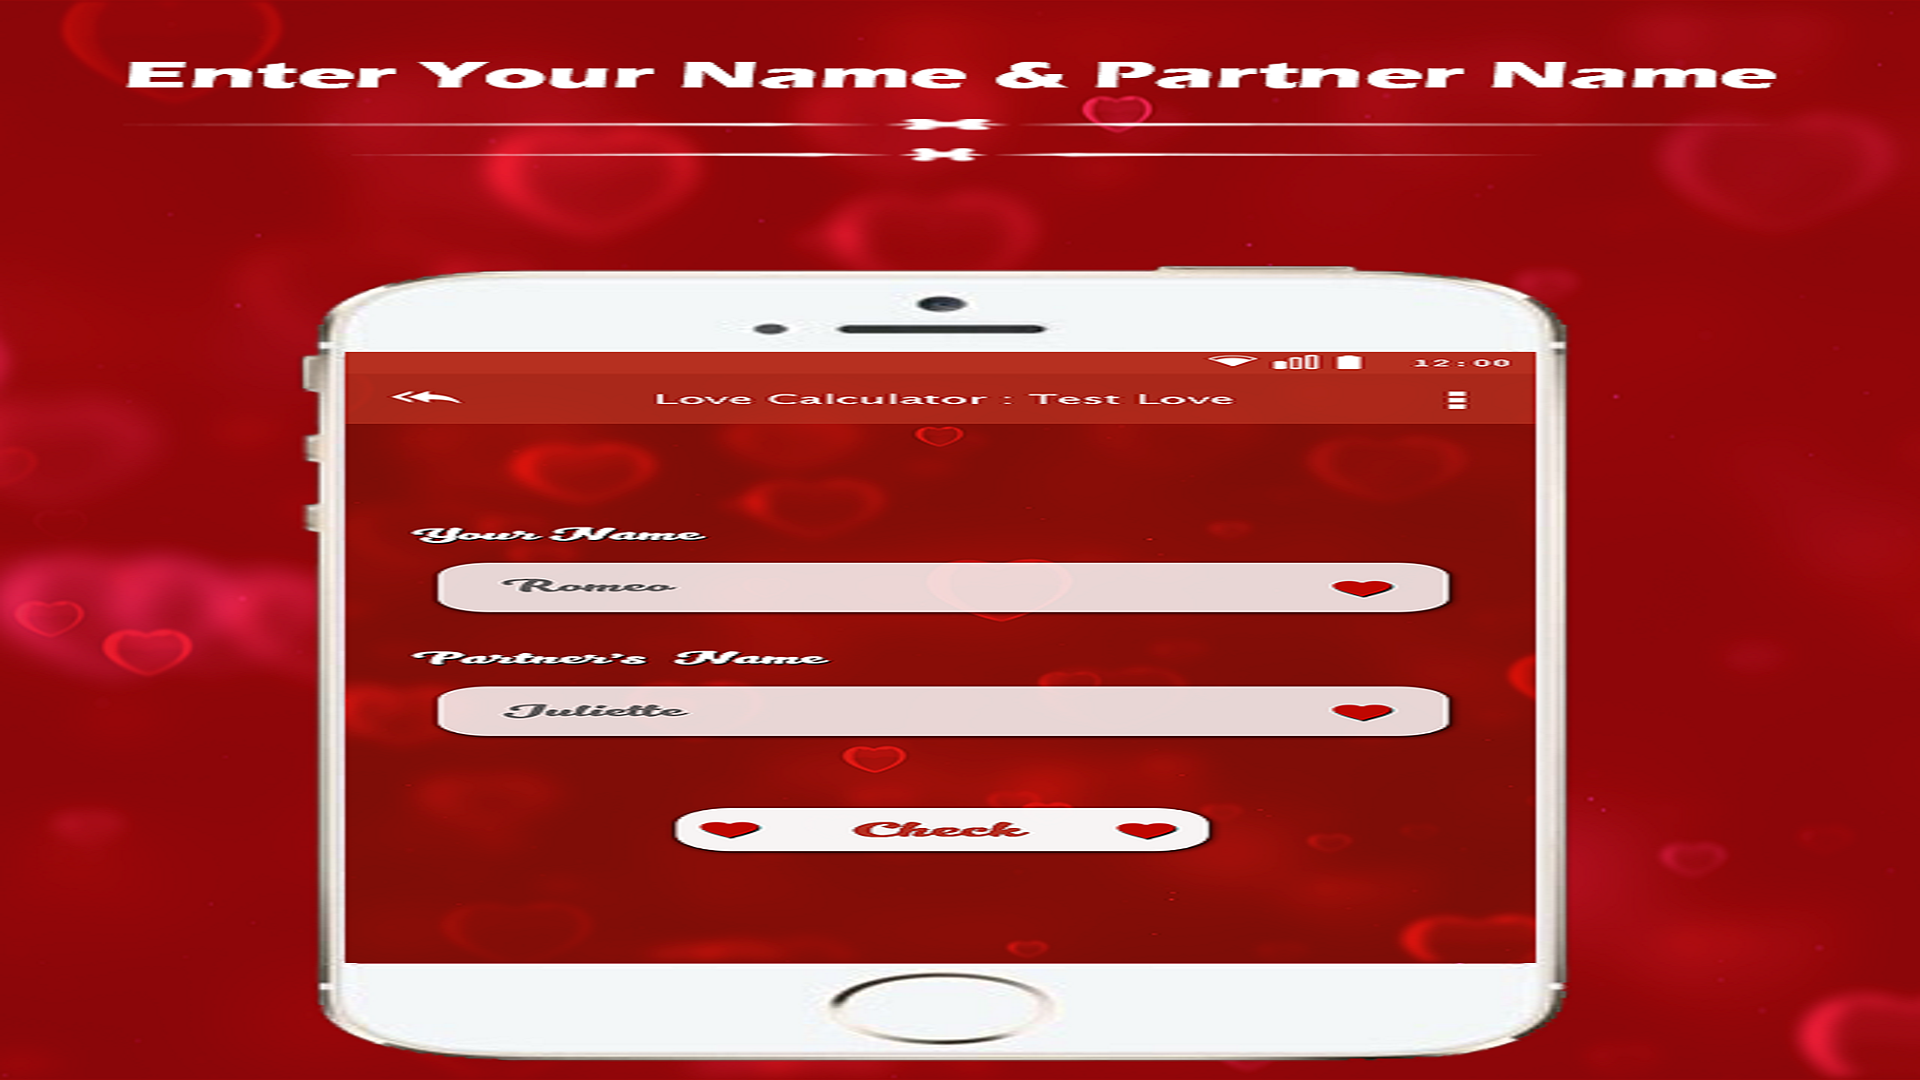 Amazon.com: Love Calculator : Test Love: Appstore for Android